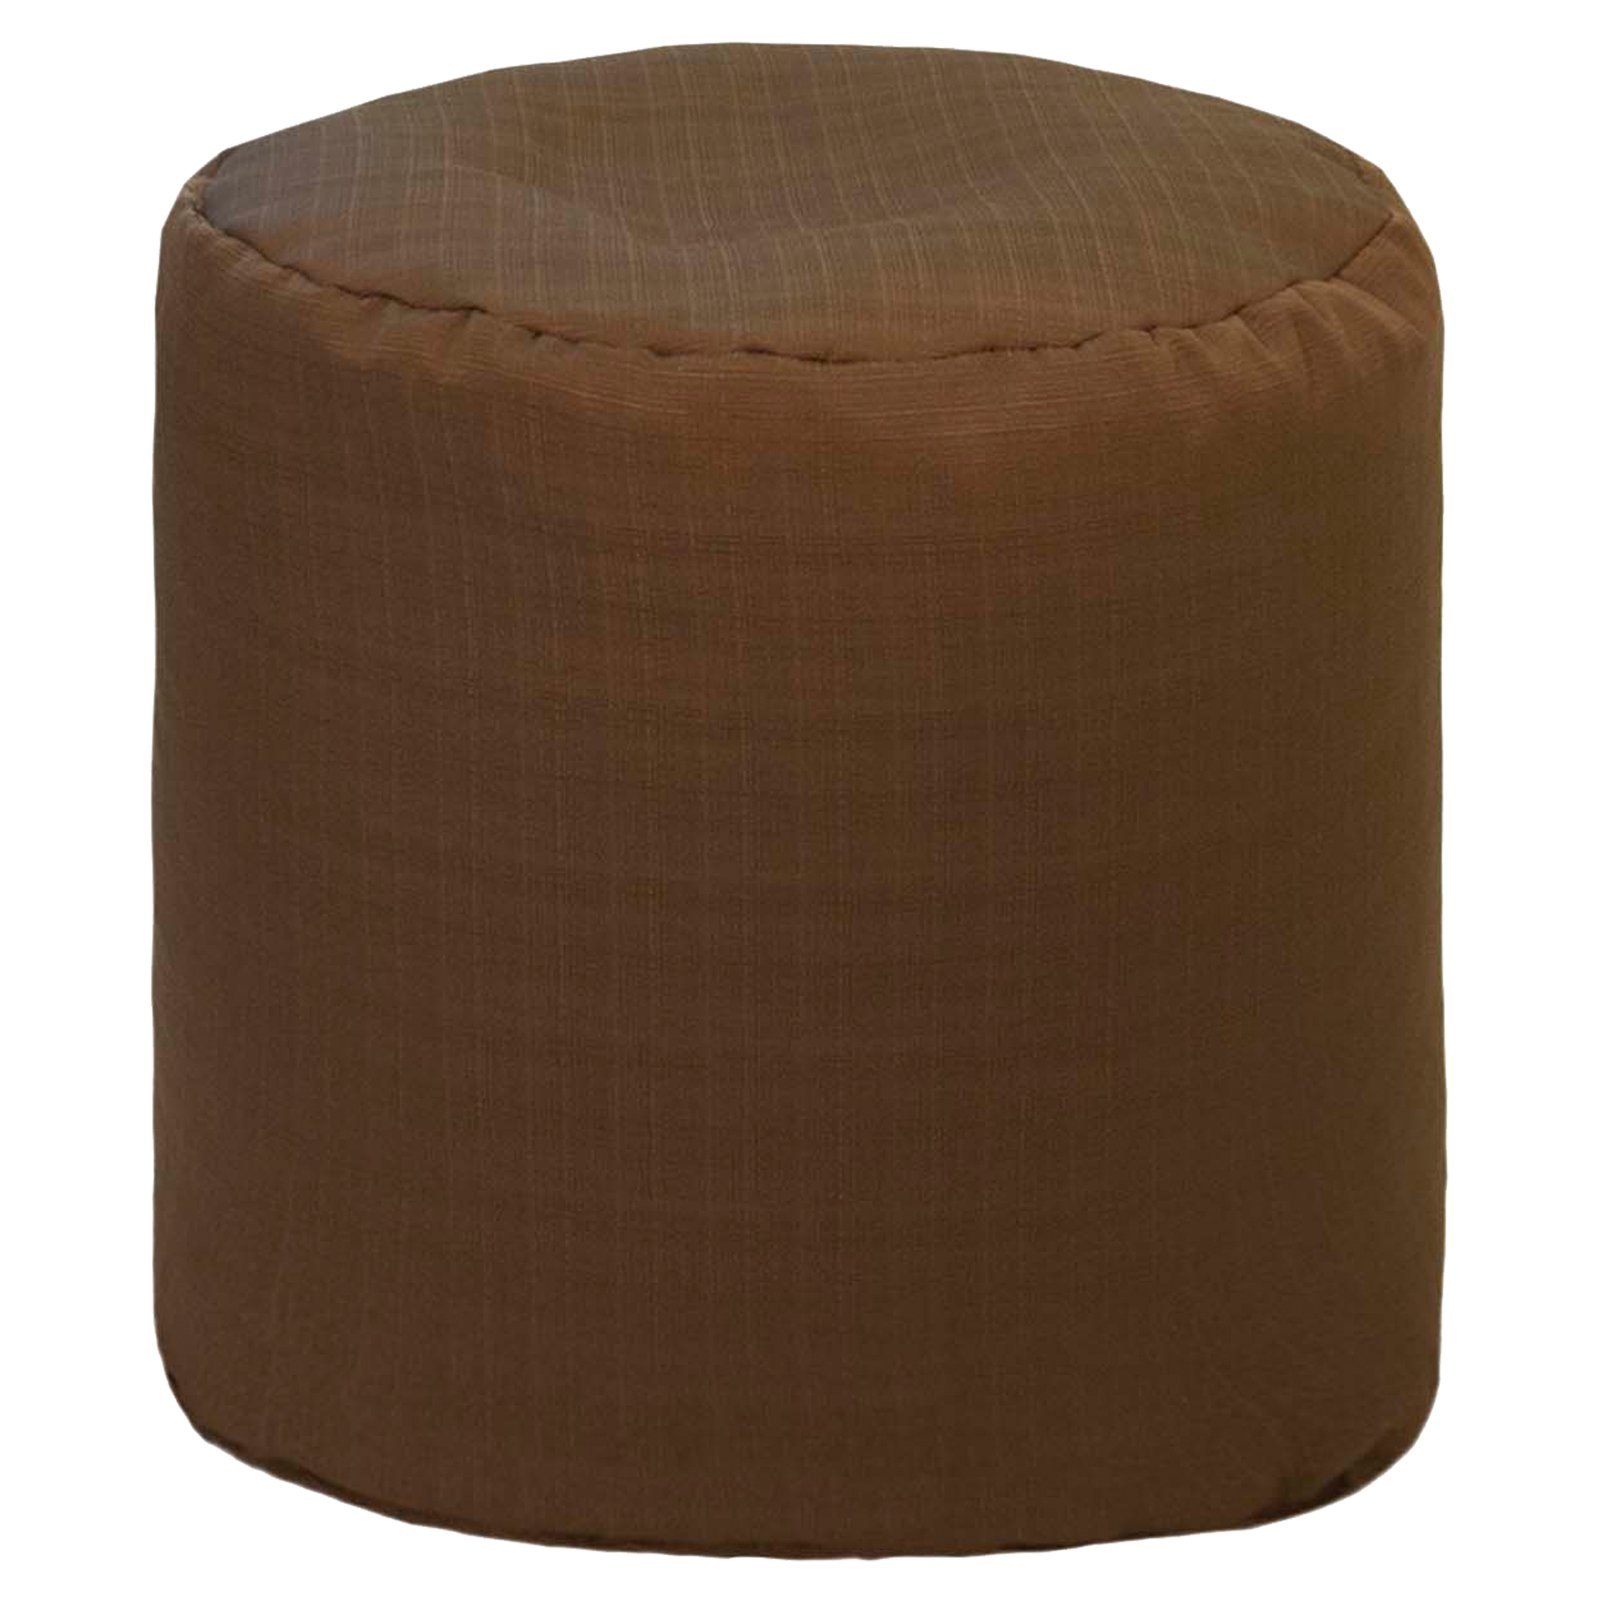 Gold Medal 19 x 17 in. Sunsetter Outdoor Pouf